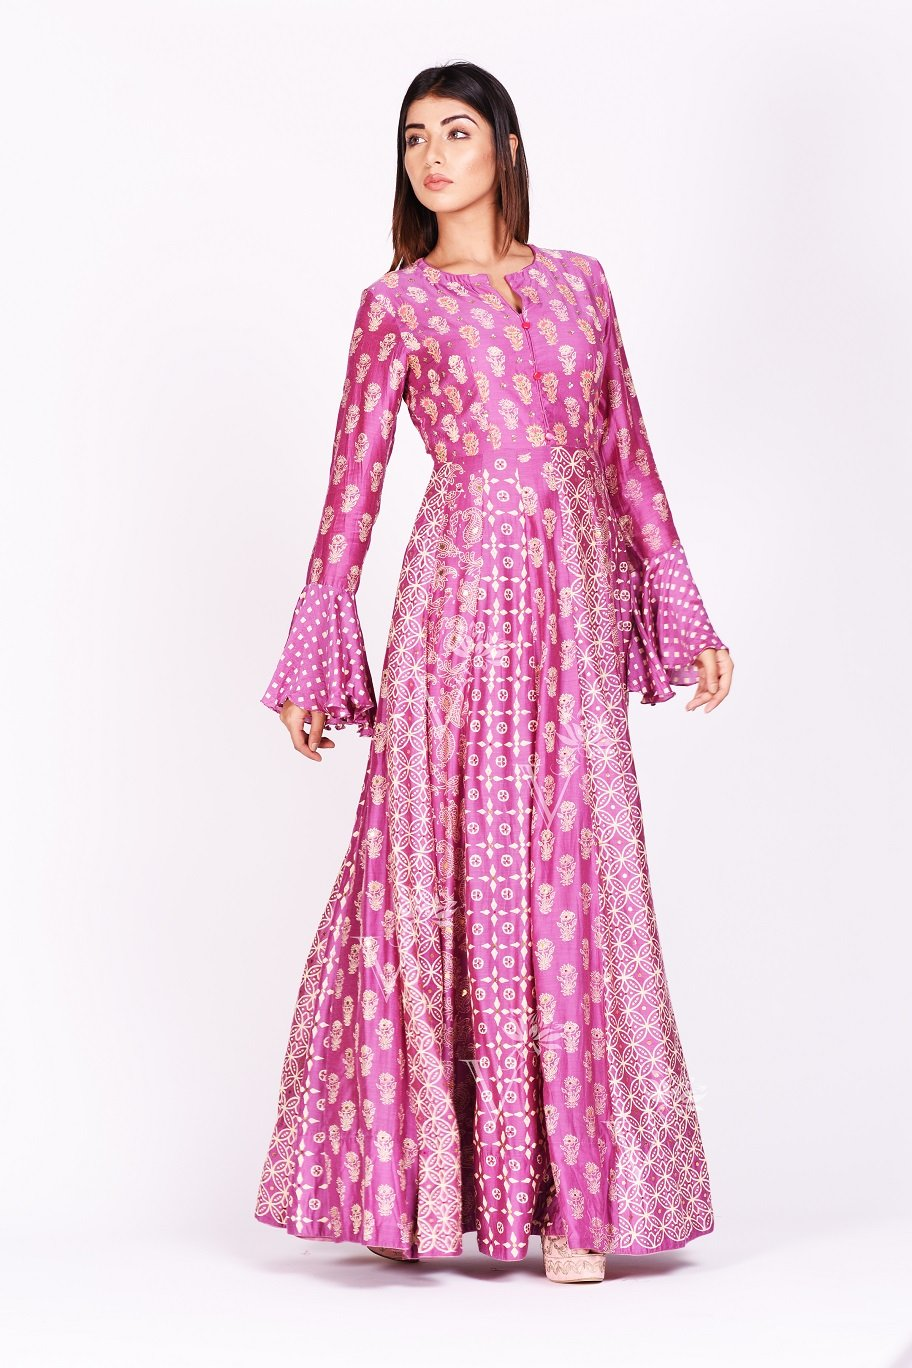 Shop lovely fuschia pink printed silk Anarkali suit online in USA with bell sleeves. Make a stunning fashion statement at weddings and special occasions with an exquisite collection of designer Anarkali suits, designer lehengas, Indian designer dresses from Pure Elegance Indian fashion store in USA. -sidepose